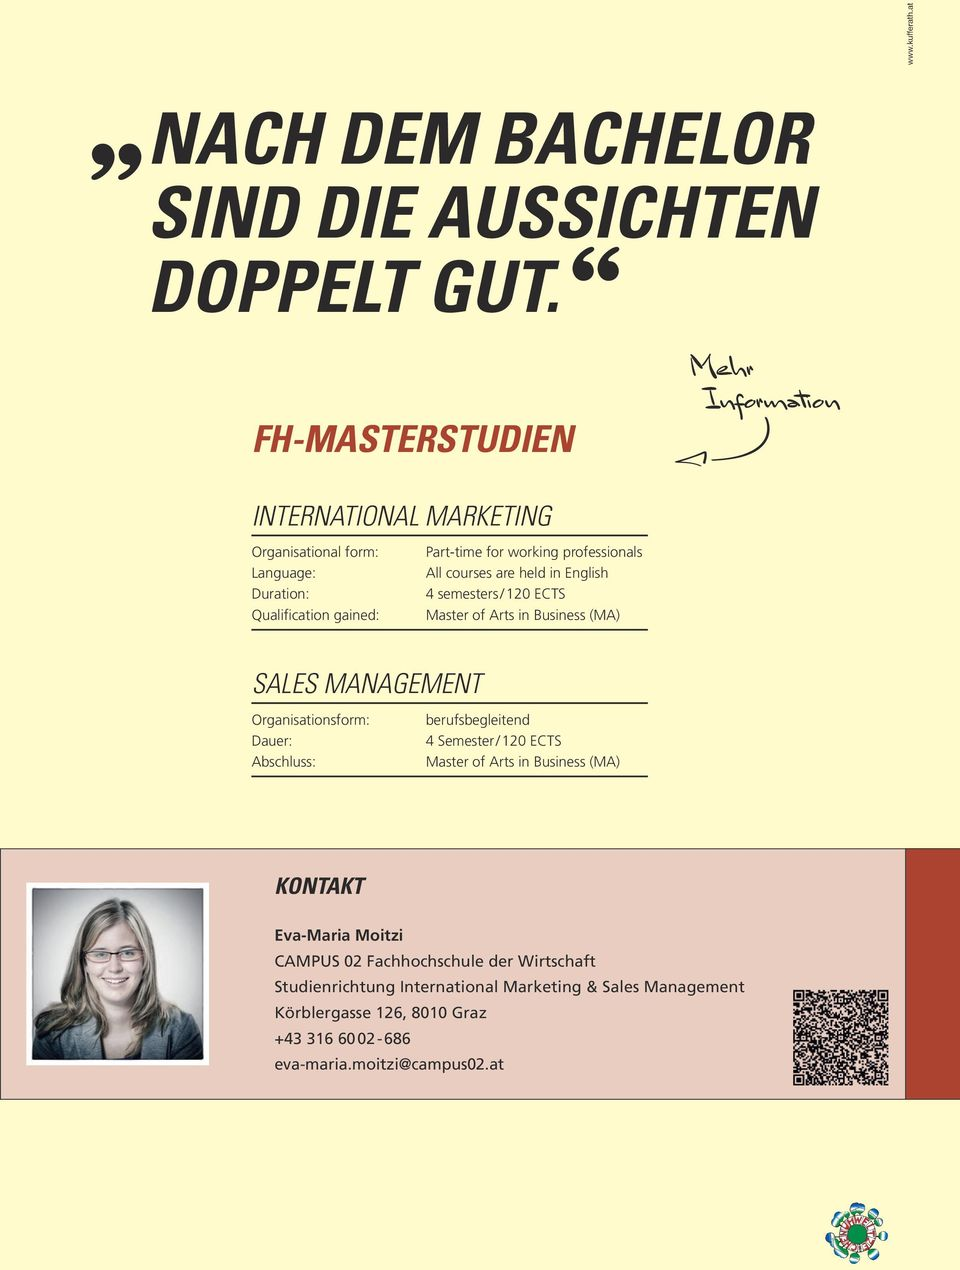 are held in English 4 semesters / 120 ECTS Master of Arts in Business (MA) SALES MANAGEMENT Organisationsform: Dauer: Abschluss: berufsbegleitend 4 Semester / 120 ECTS